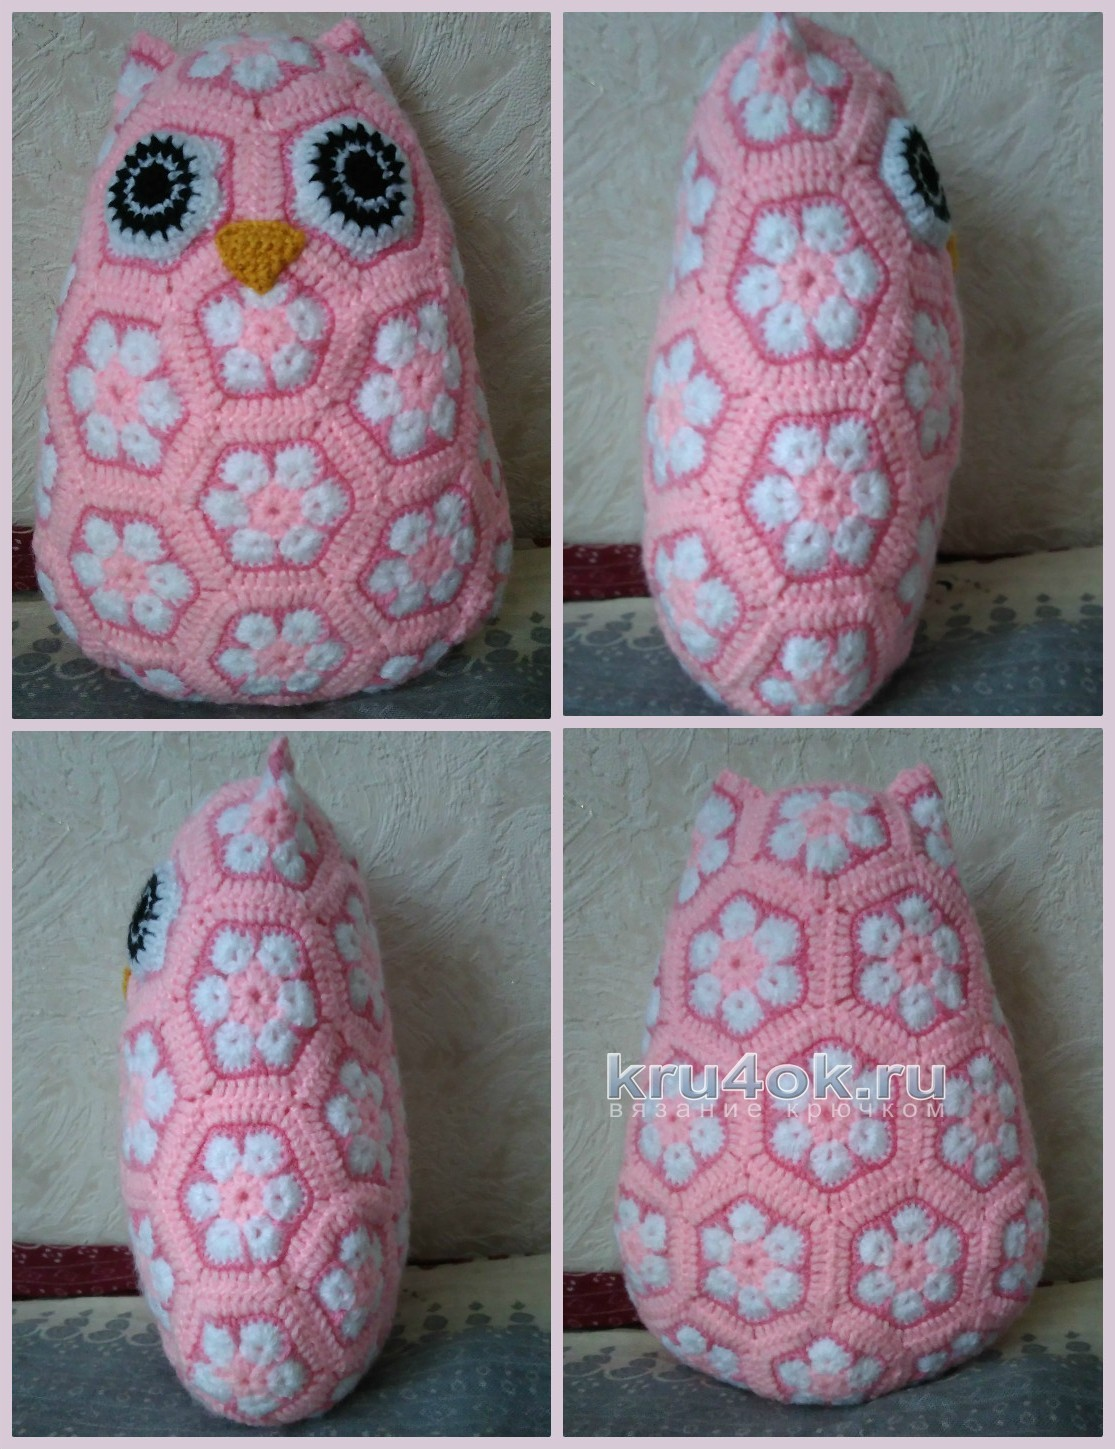 Owl From Motifs African Flower Crochet Motif Motivos Hexagonales Pinterest Motives Workxenia For A Long Time Already All The Favorite Of Became Known To Me